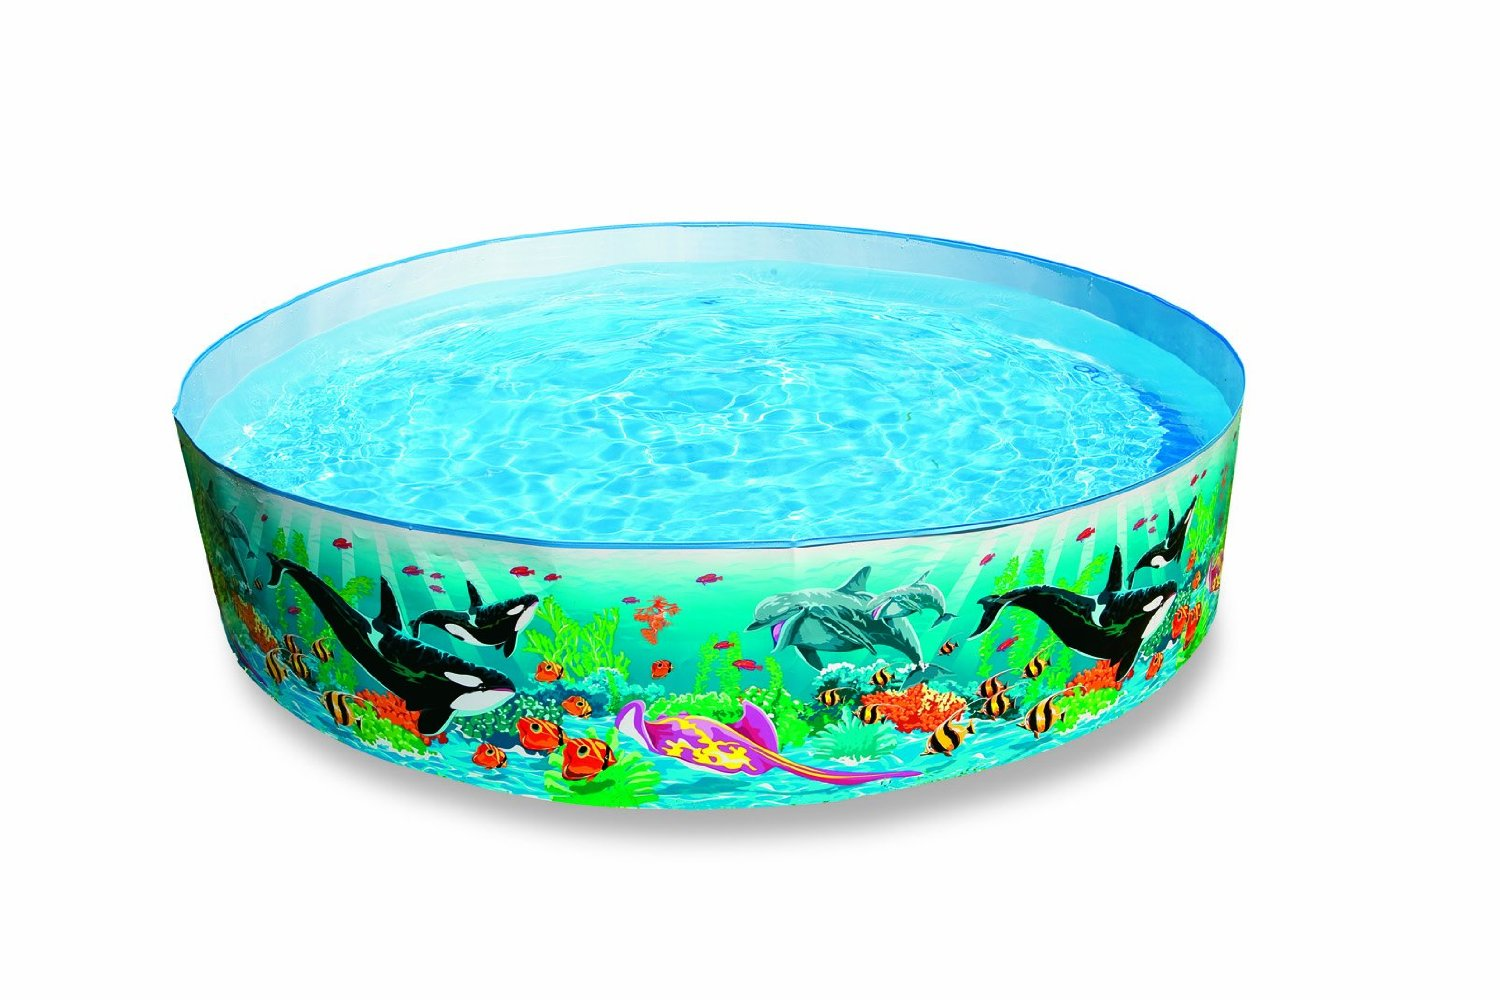 Plastic Pools For Kids kiddie pools: fun to read about? | joeyfullystated